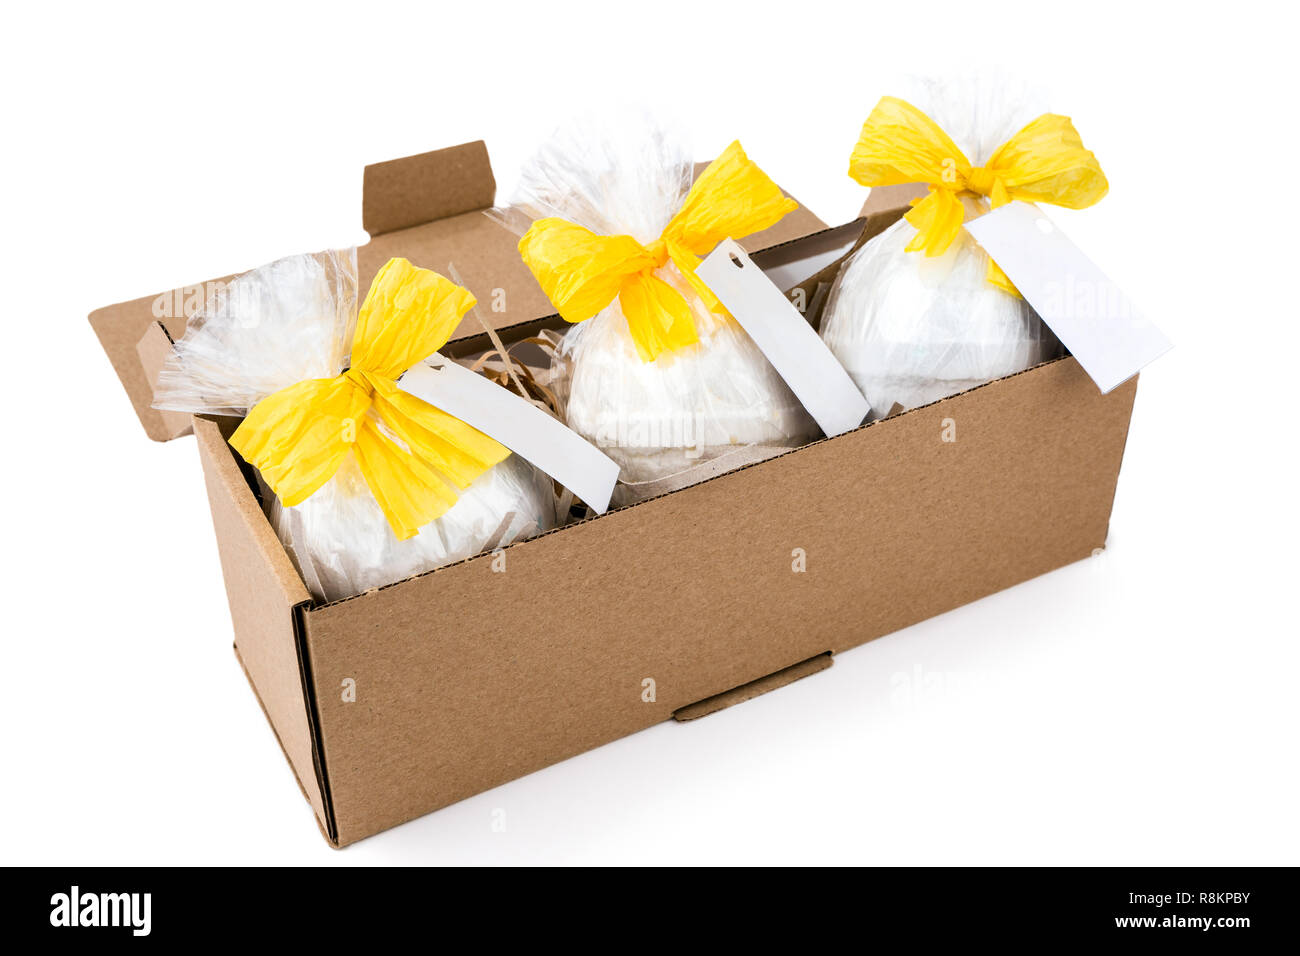 Gift set with cellophane wrapped  aromatherapy bath bombs, decorated with yellow bows on the white background - Stock Image